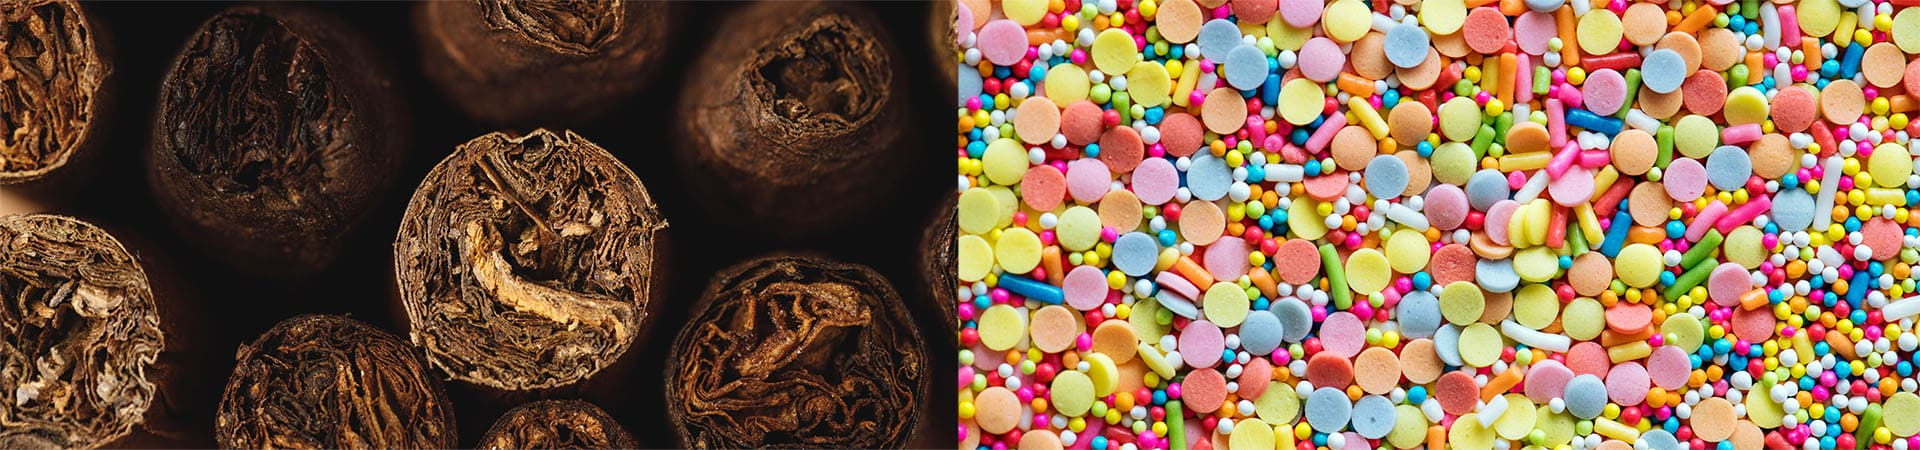 Candy and Tobacco Manufacturing